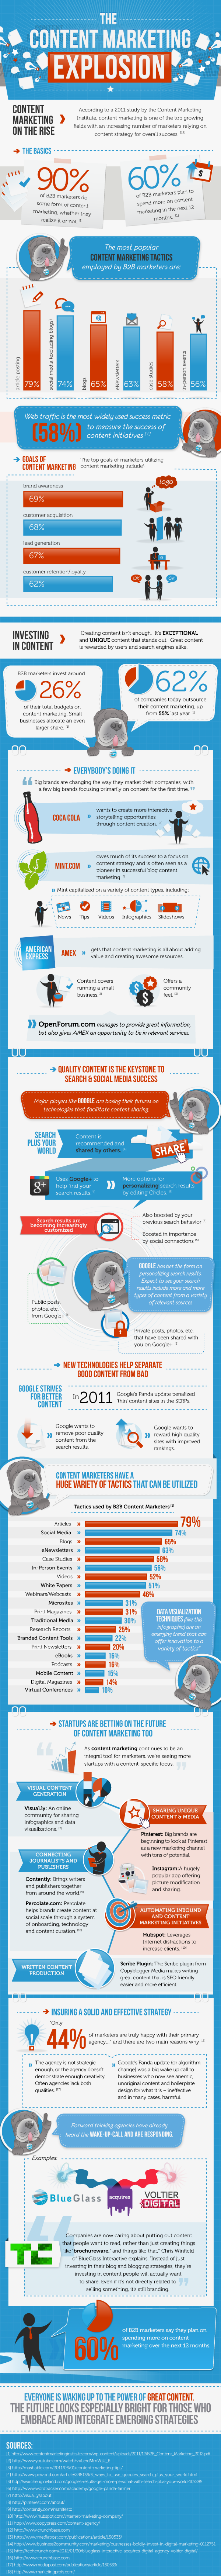 Content Marketing Explosion Infographic